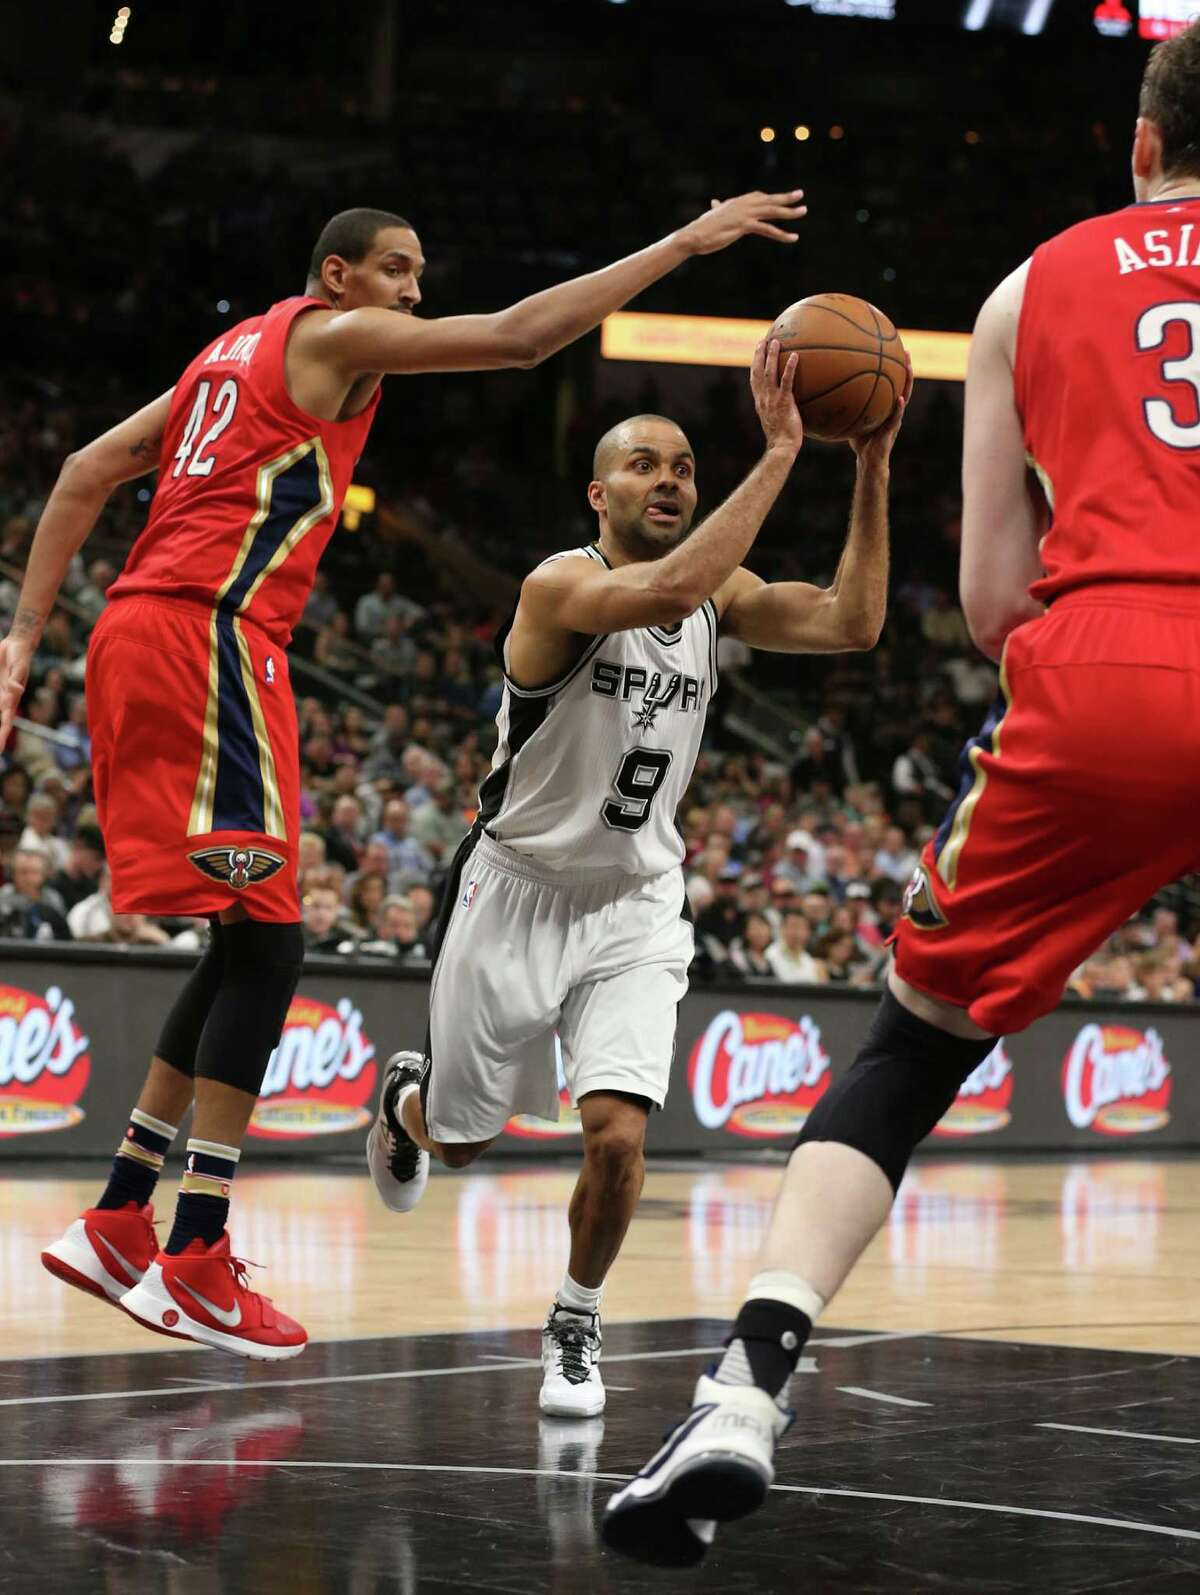 San Antonio Spurs' Tony Parker looks to pass the ball between New Orleans Pelicans' Alexis Ajinca, left, and New Orleans Pelicans' Omer Asik during the first half at the AT&T Center, Wednesday, March 30, 2016.